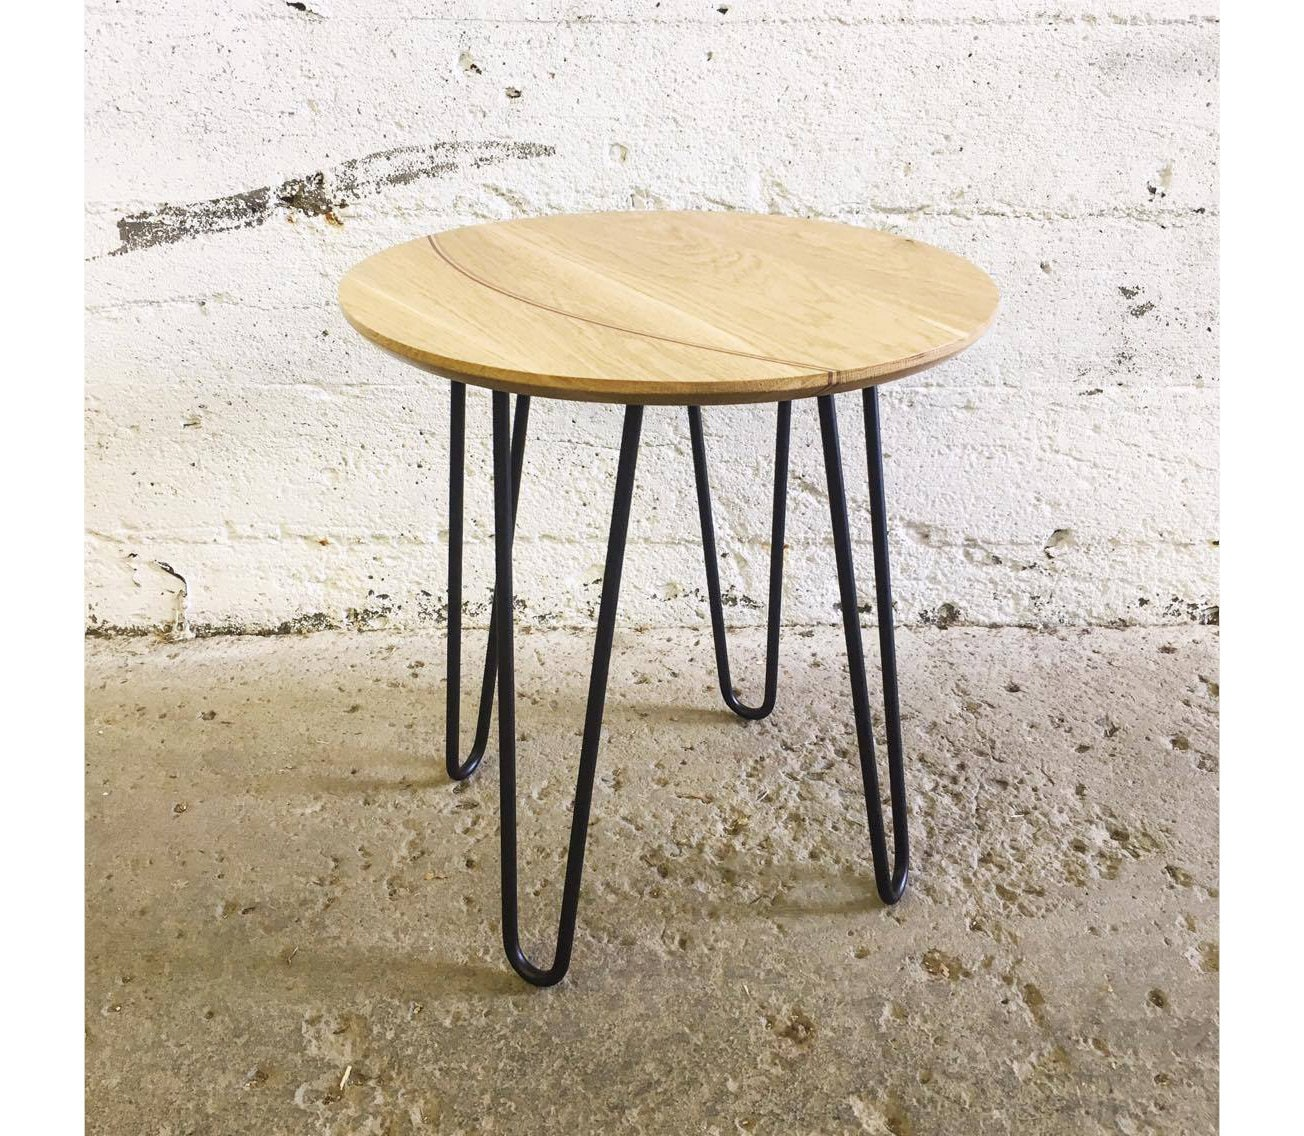 grogg side table i small table living room table entryway entrance table metal steel legs hairpin legs wood table